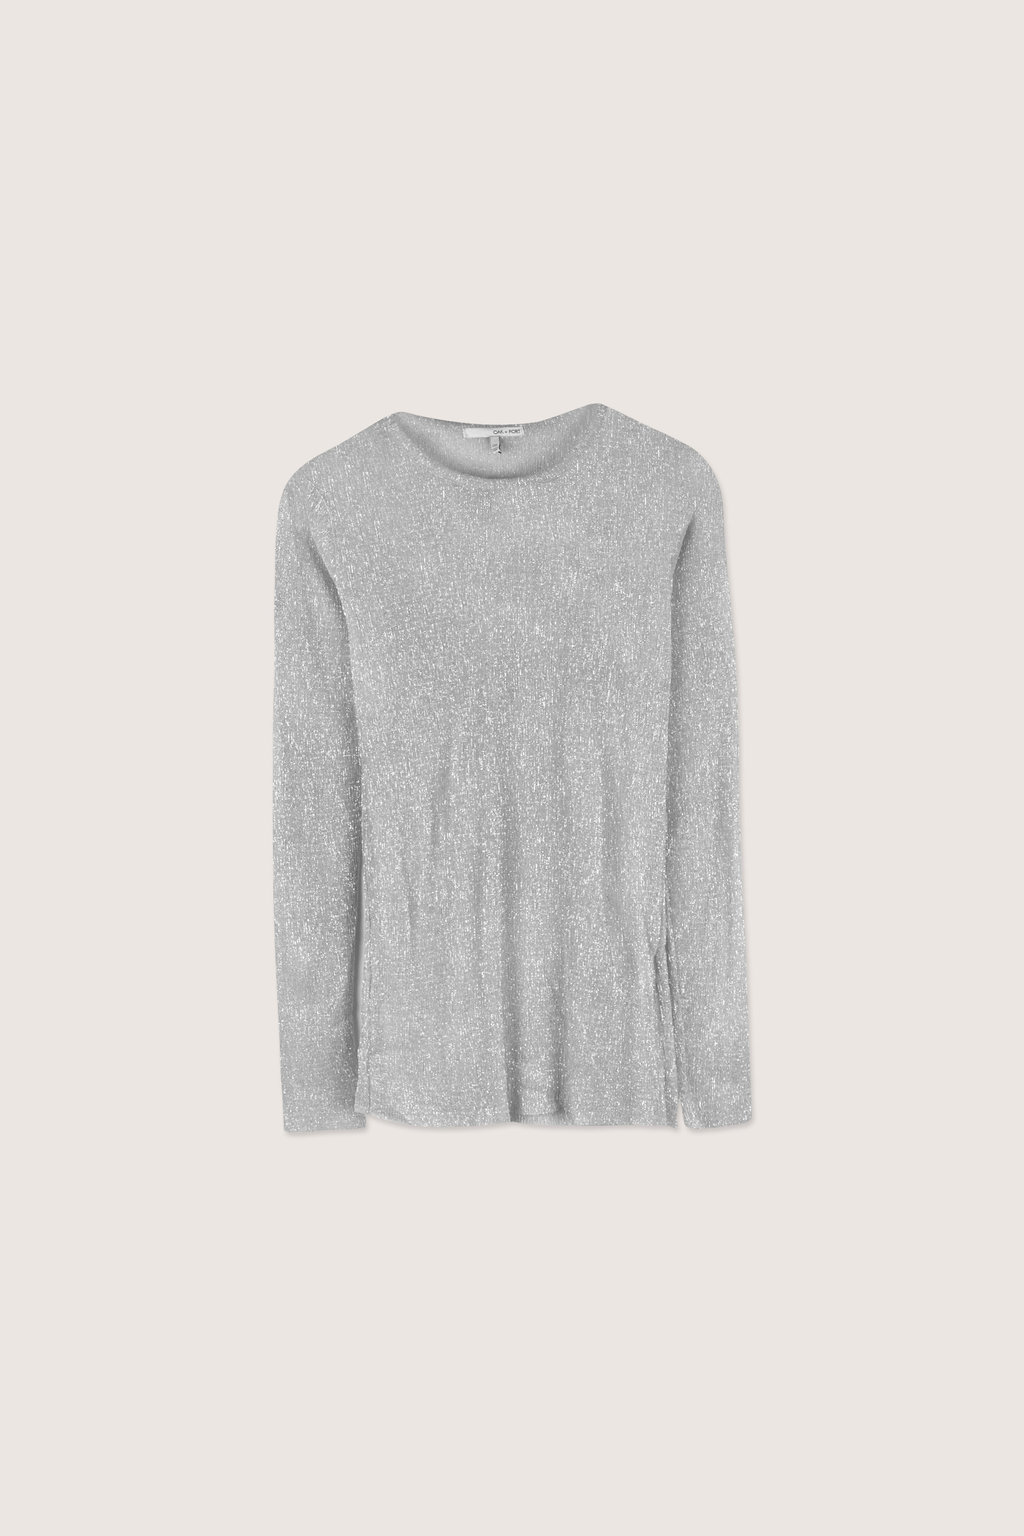 Sweater H177 Silver 5